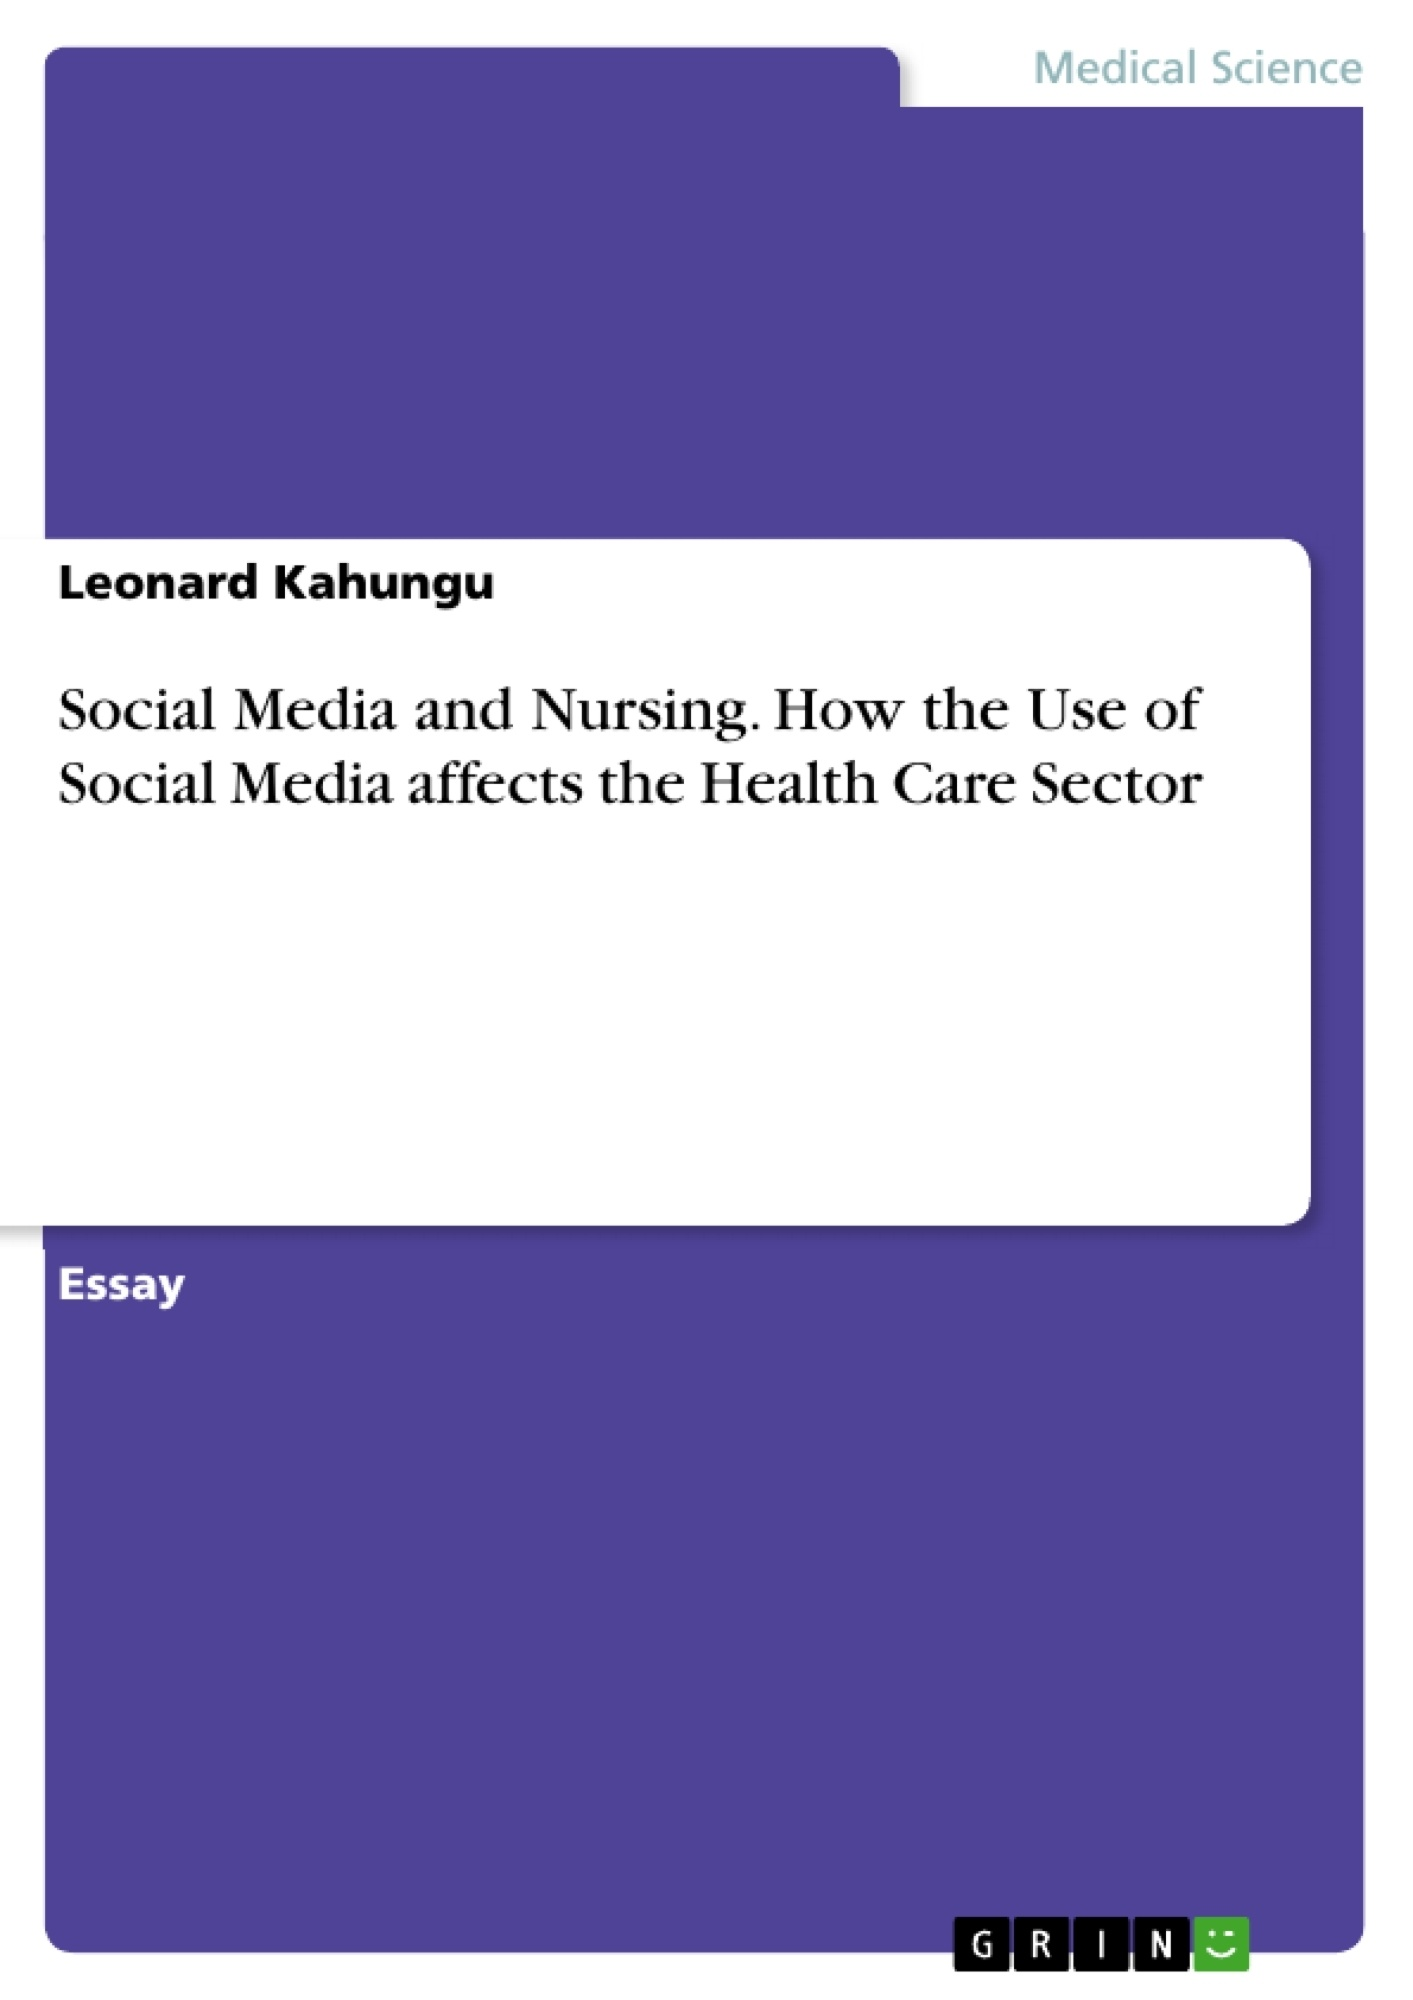 Title: Social Media and Nursing. How the Use of Social Media affects the Health Care Sector